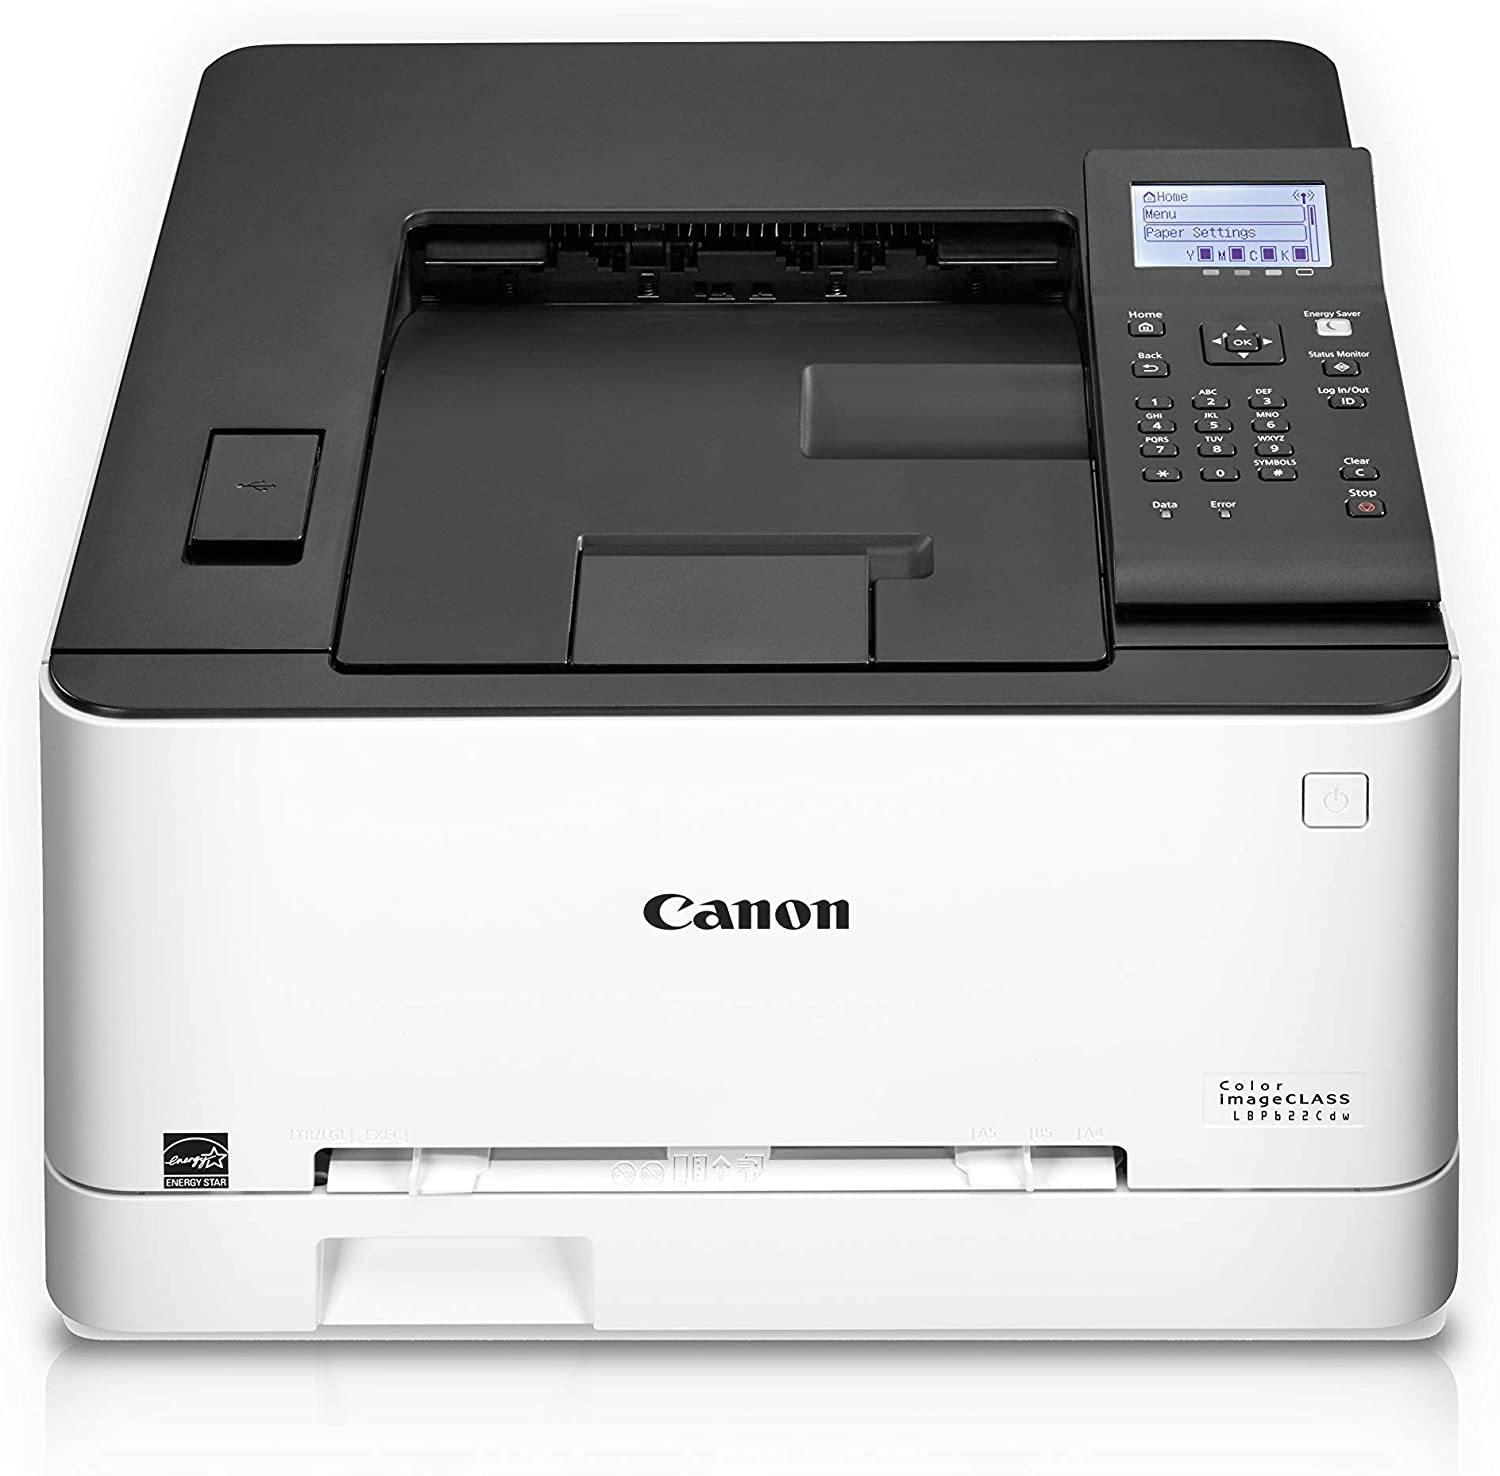 Canon Color Image CLASS LBP622Cdw -Wireless, Mobile Ready, Duplex Laser Printer, Compact Size - White